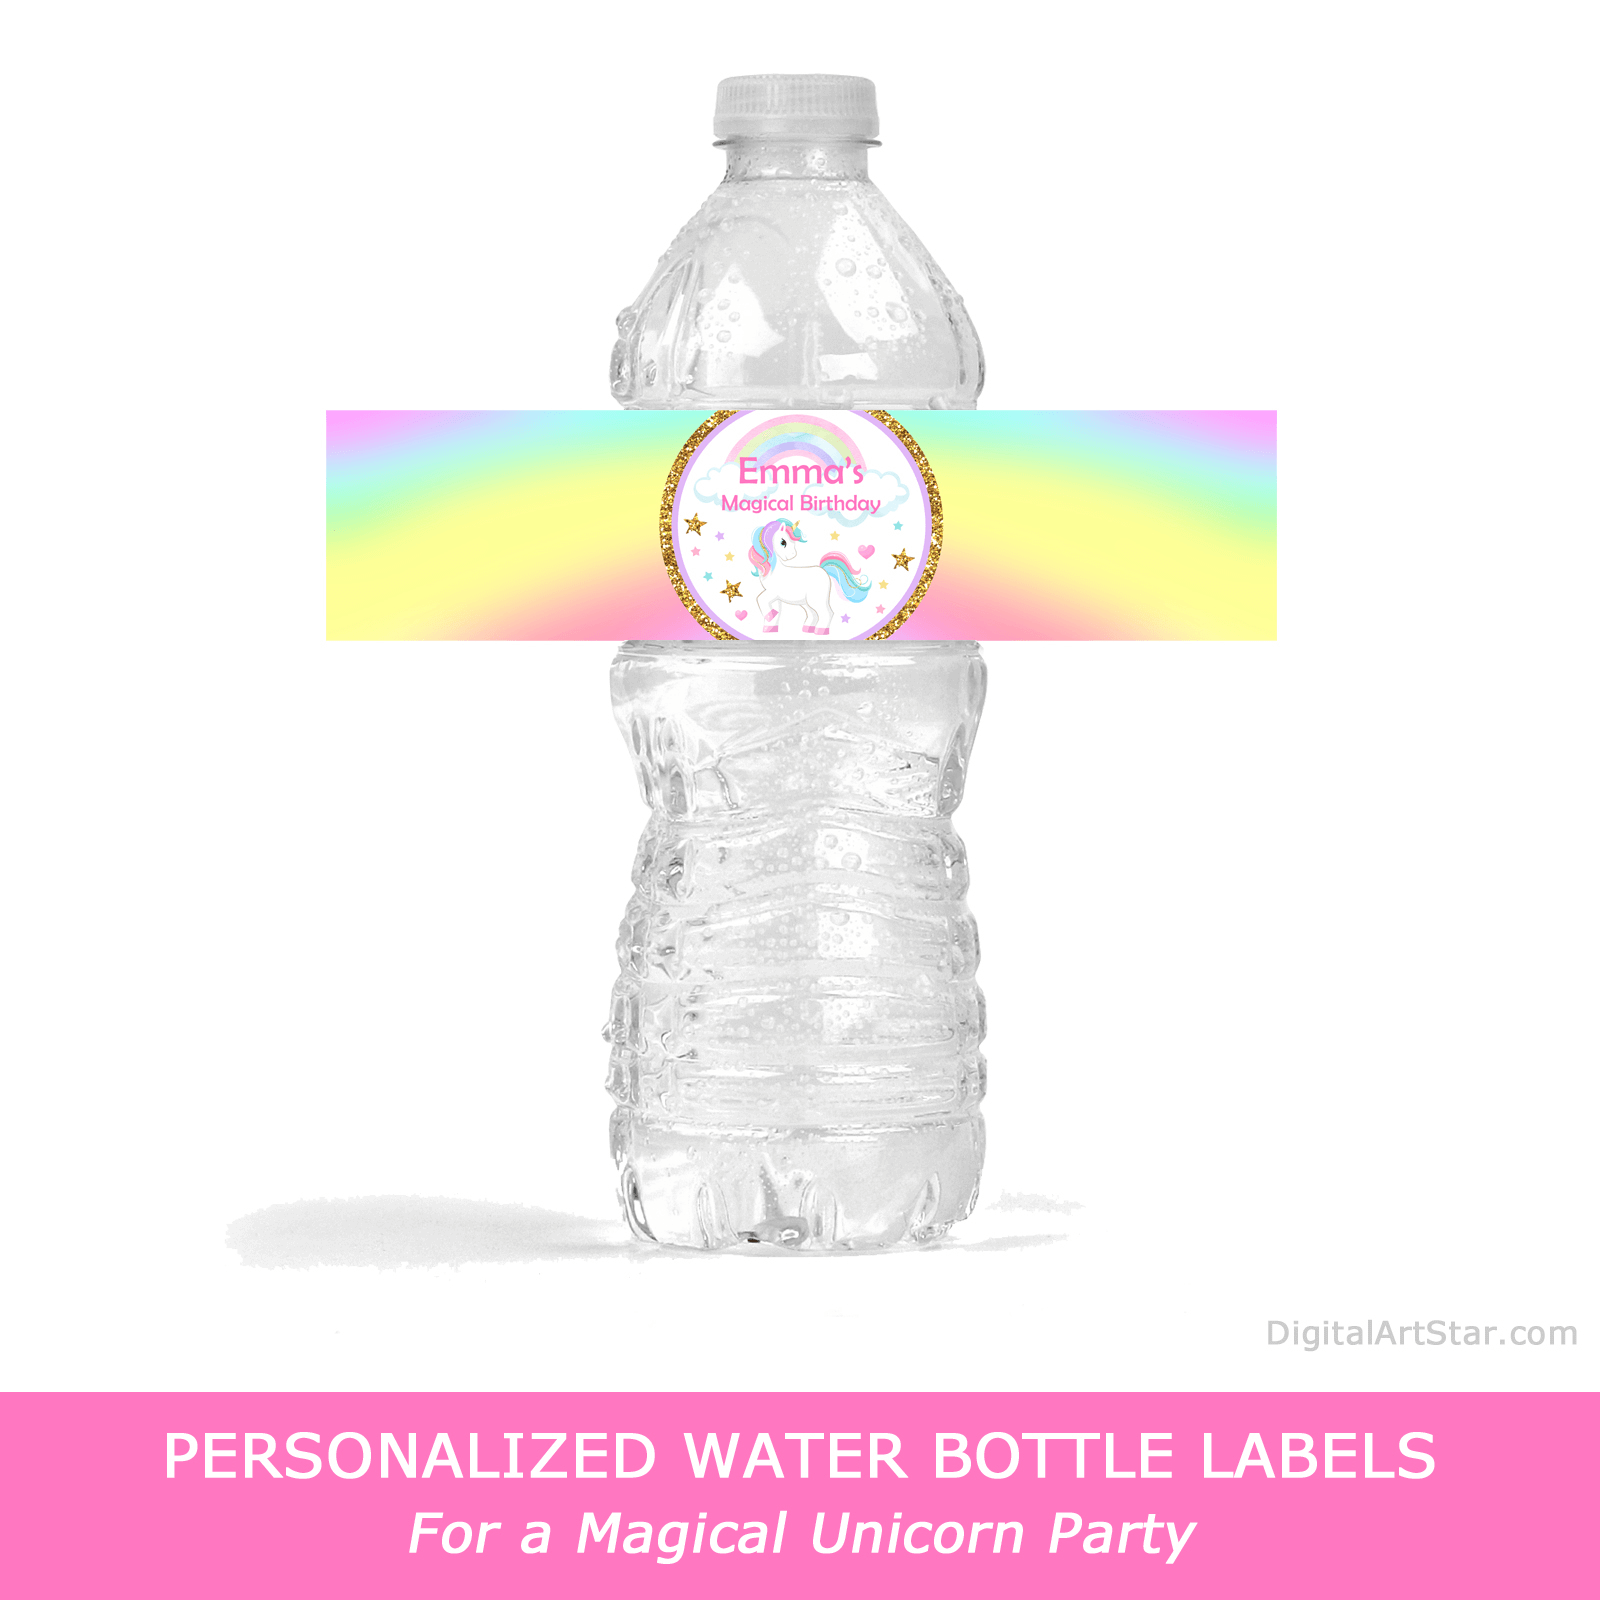 Personalized Water Bottle Labels for Magical Unicorn Birthday Party